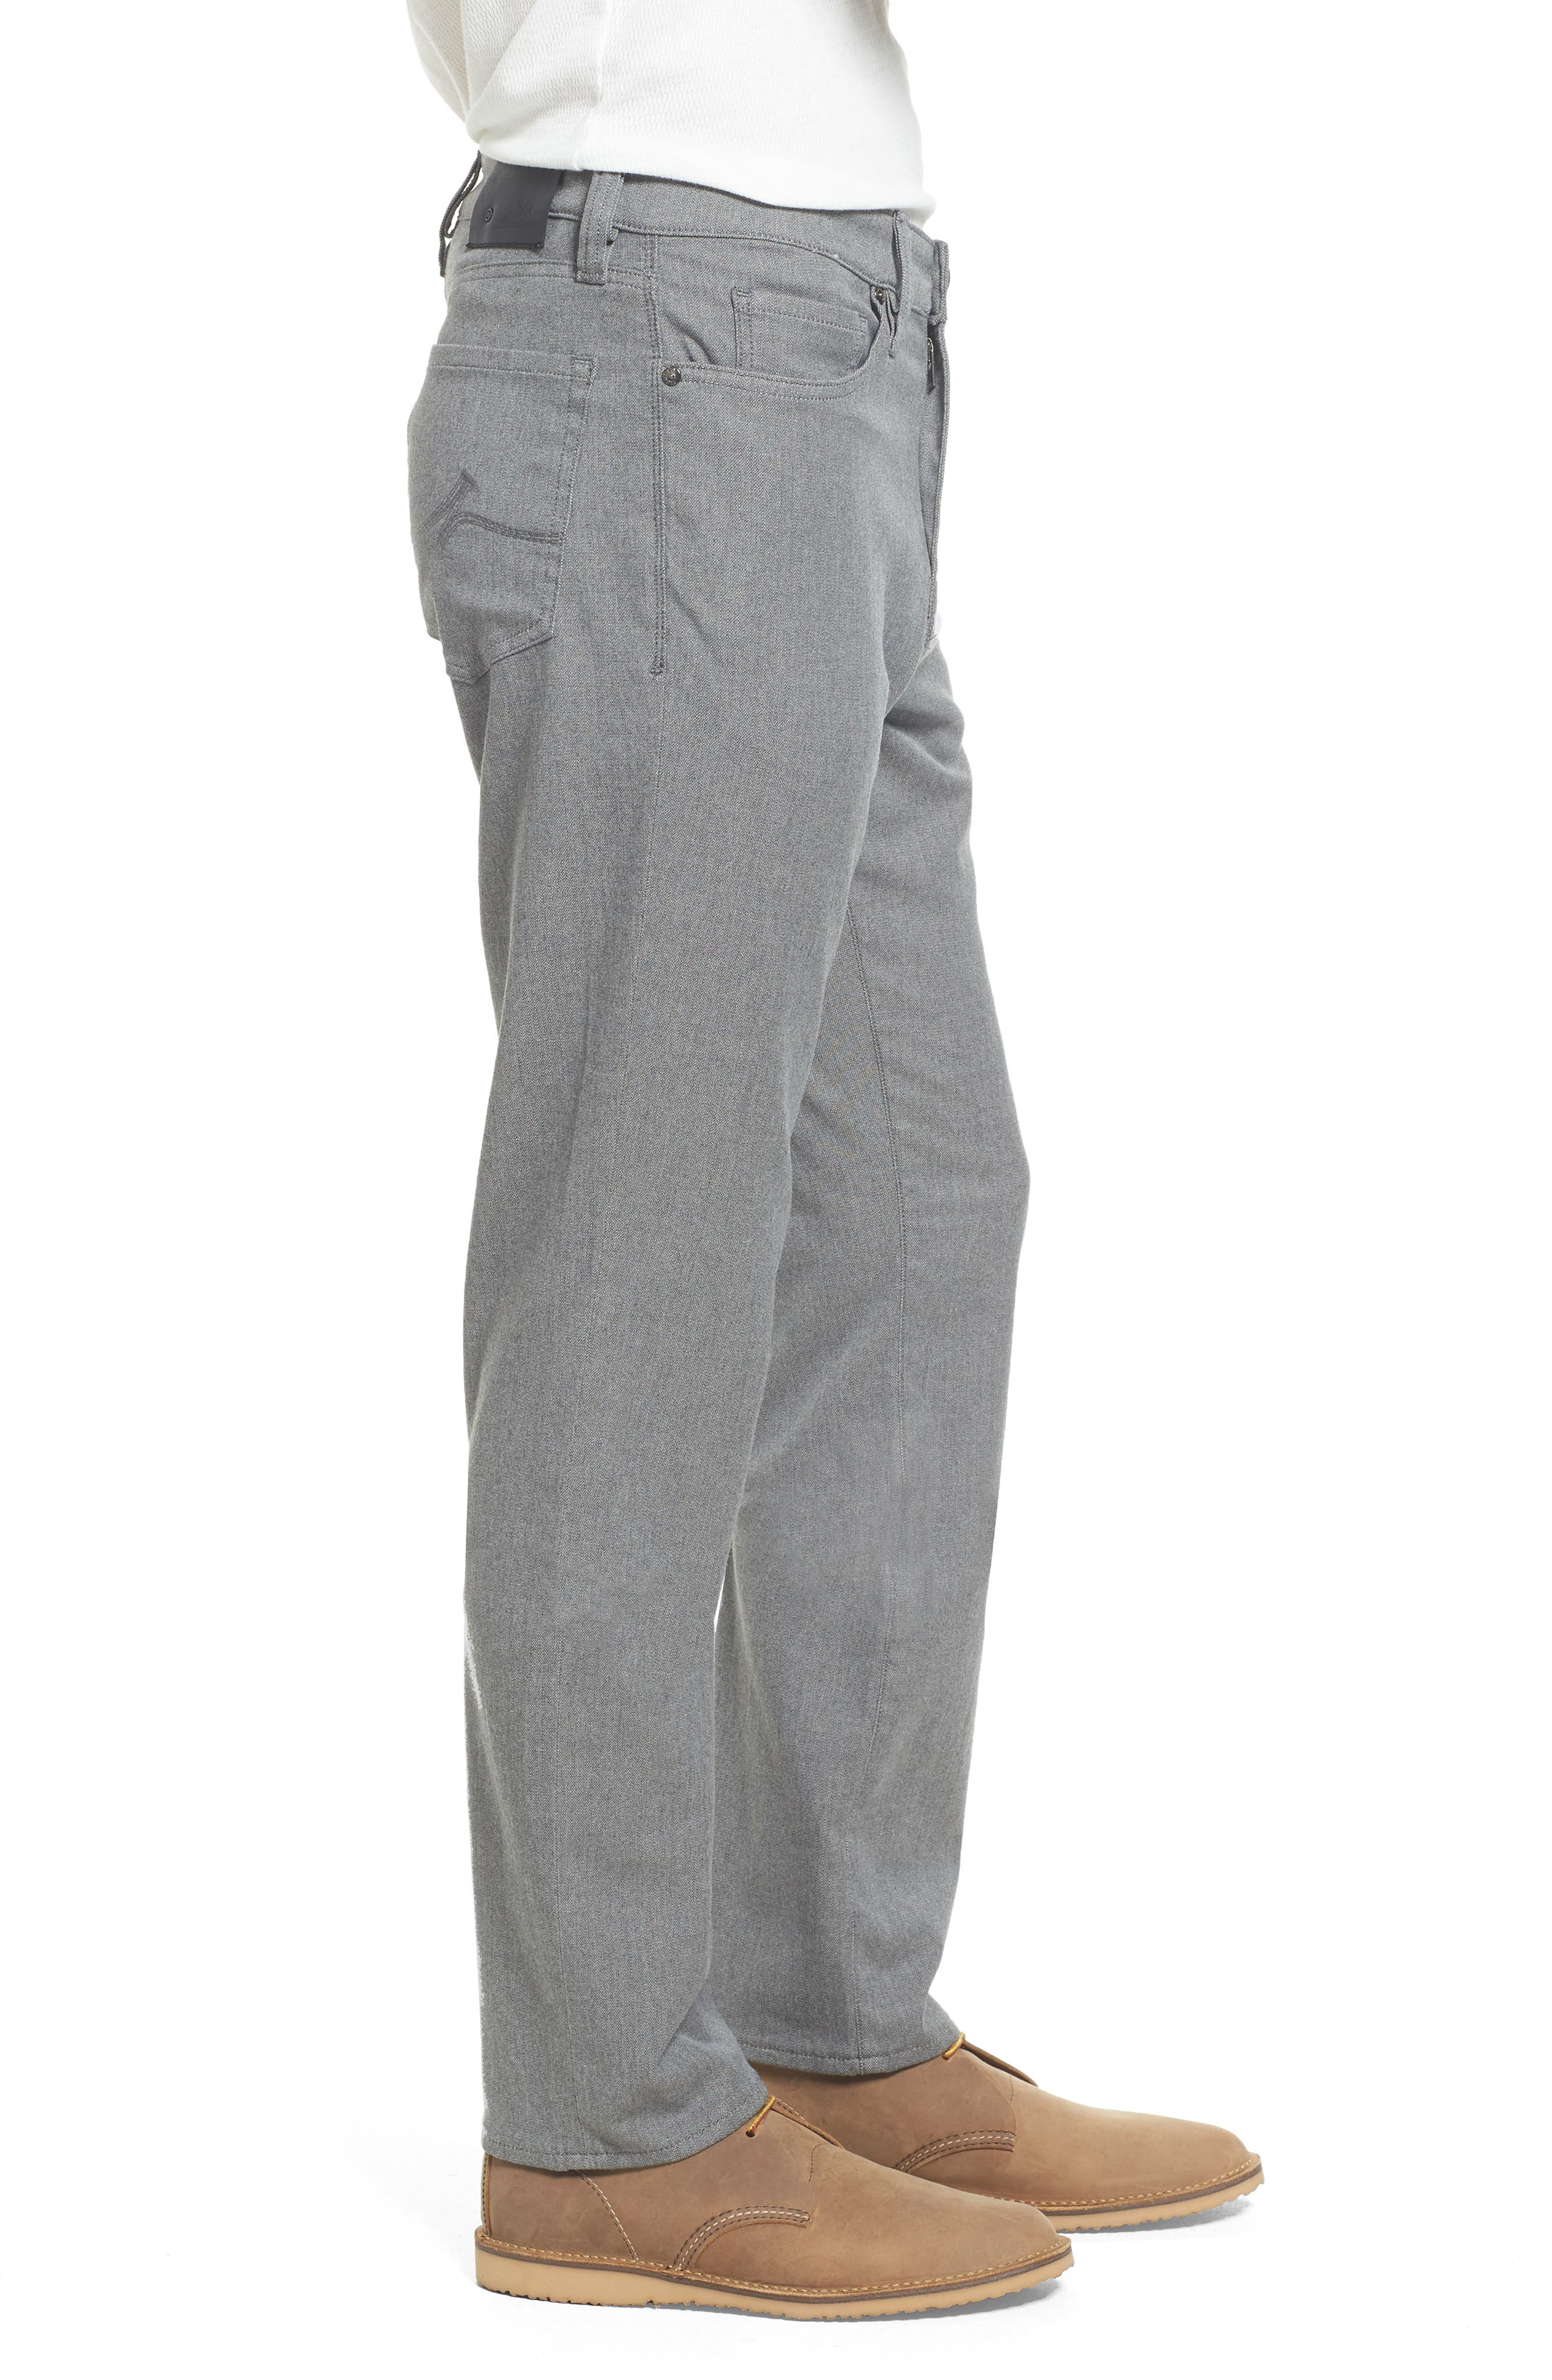 Charisma Relaxed Fit Jeans,                             Alternate thumbnail 3, color,                             Grey Winter Twill